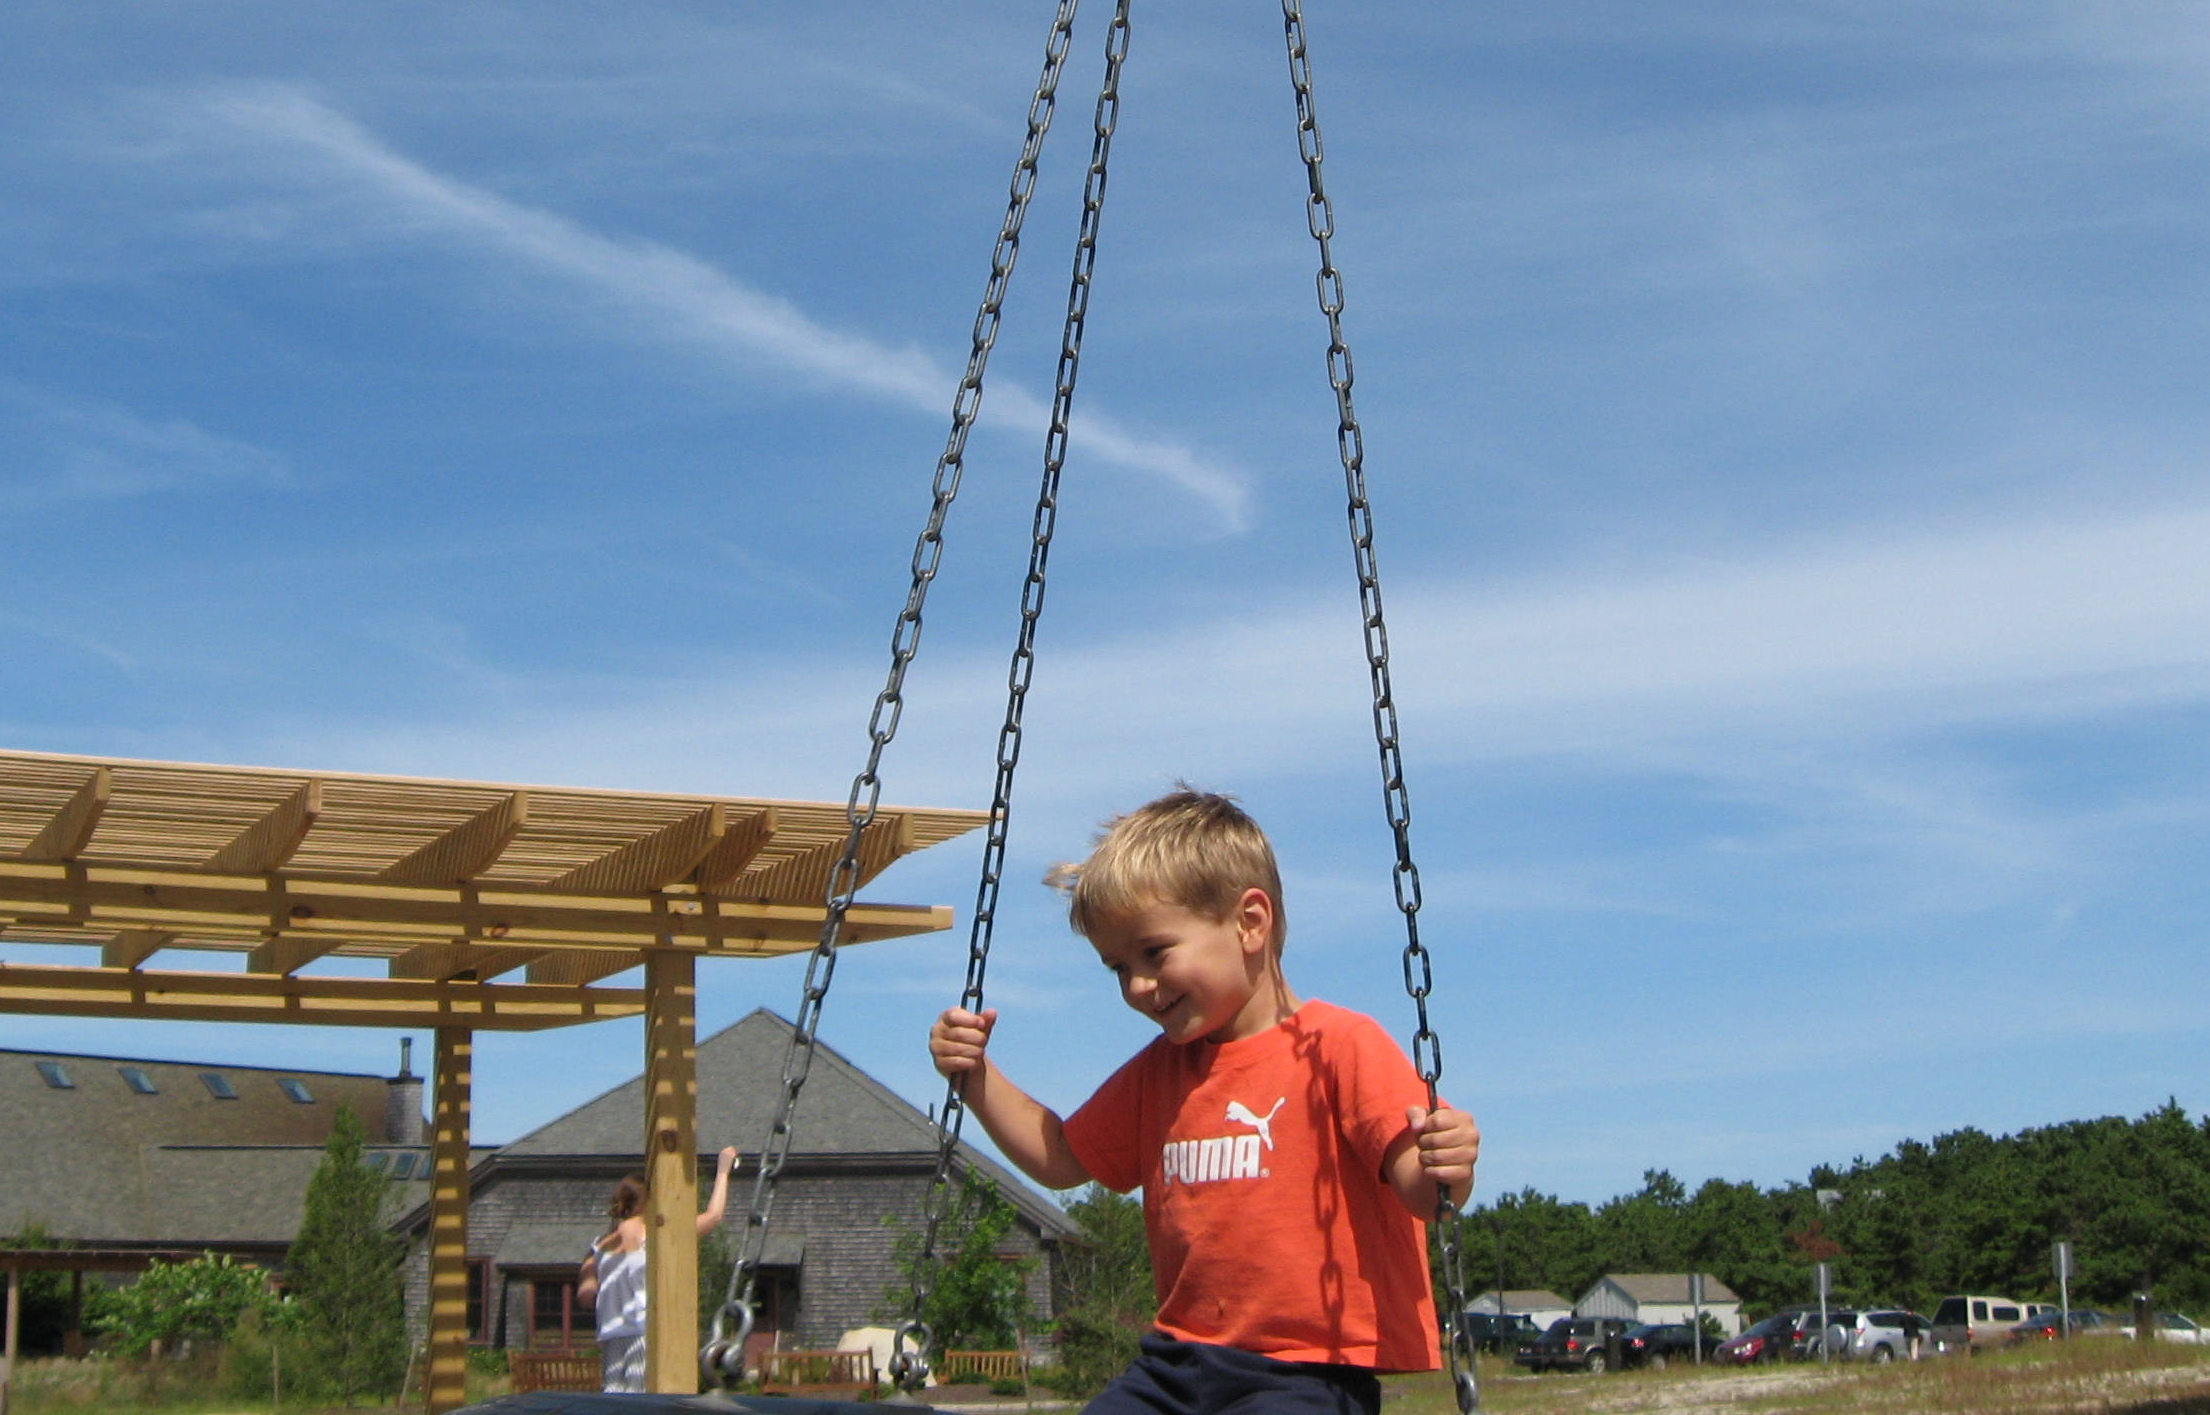 the twirling tire swing is the best!